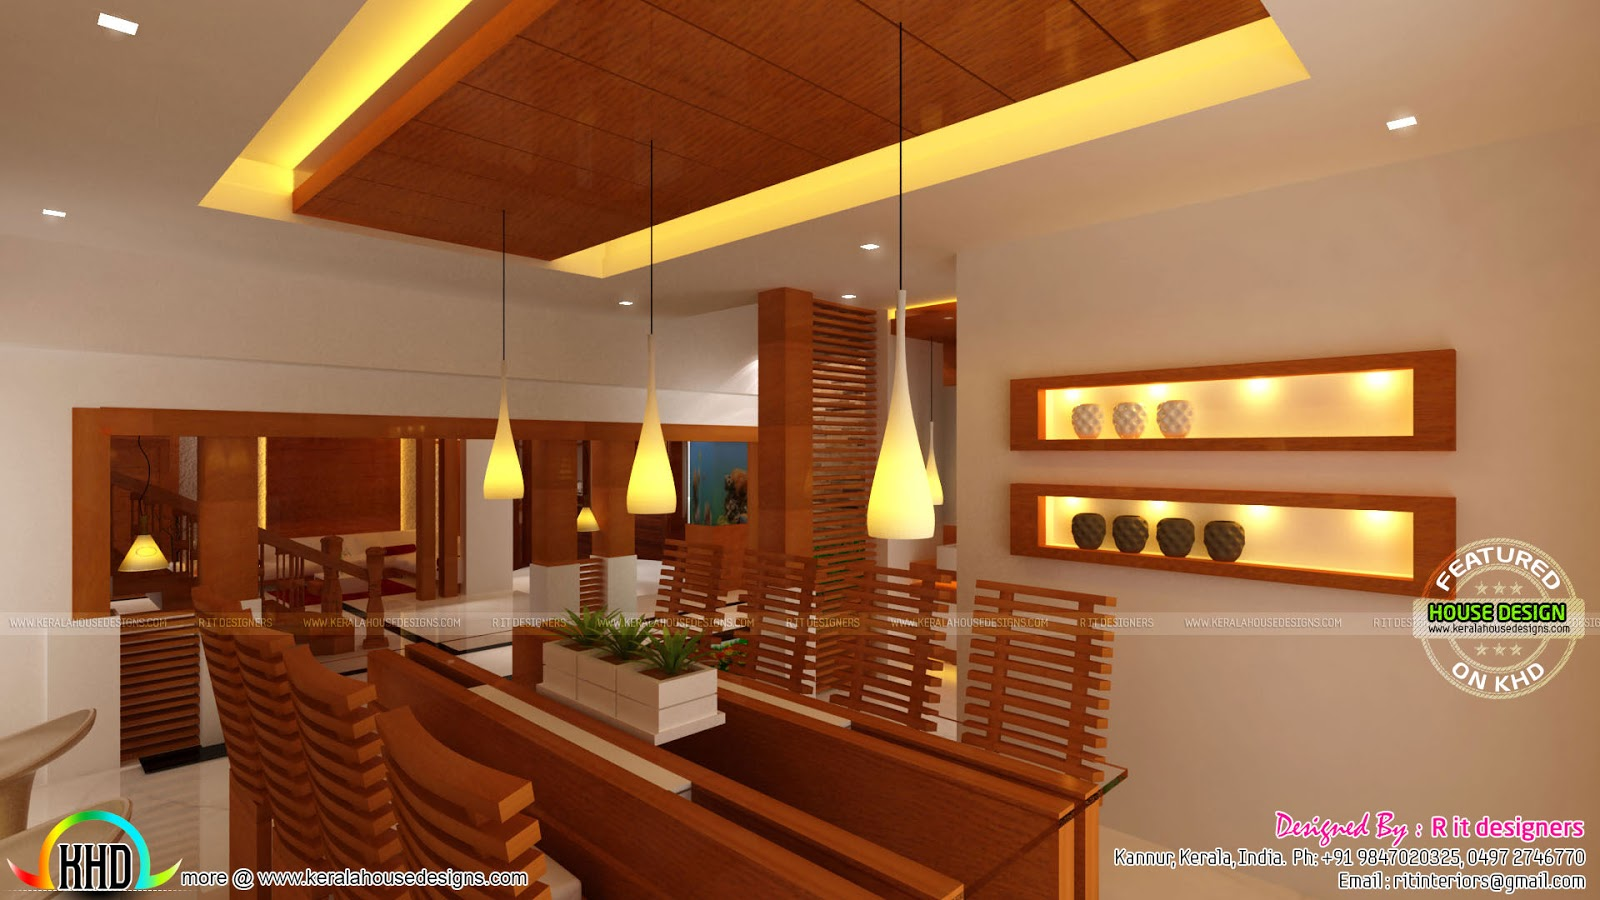 Wooden finish interior designs kerala home design and for Kerala home interior